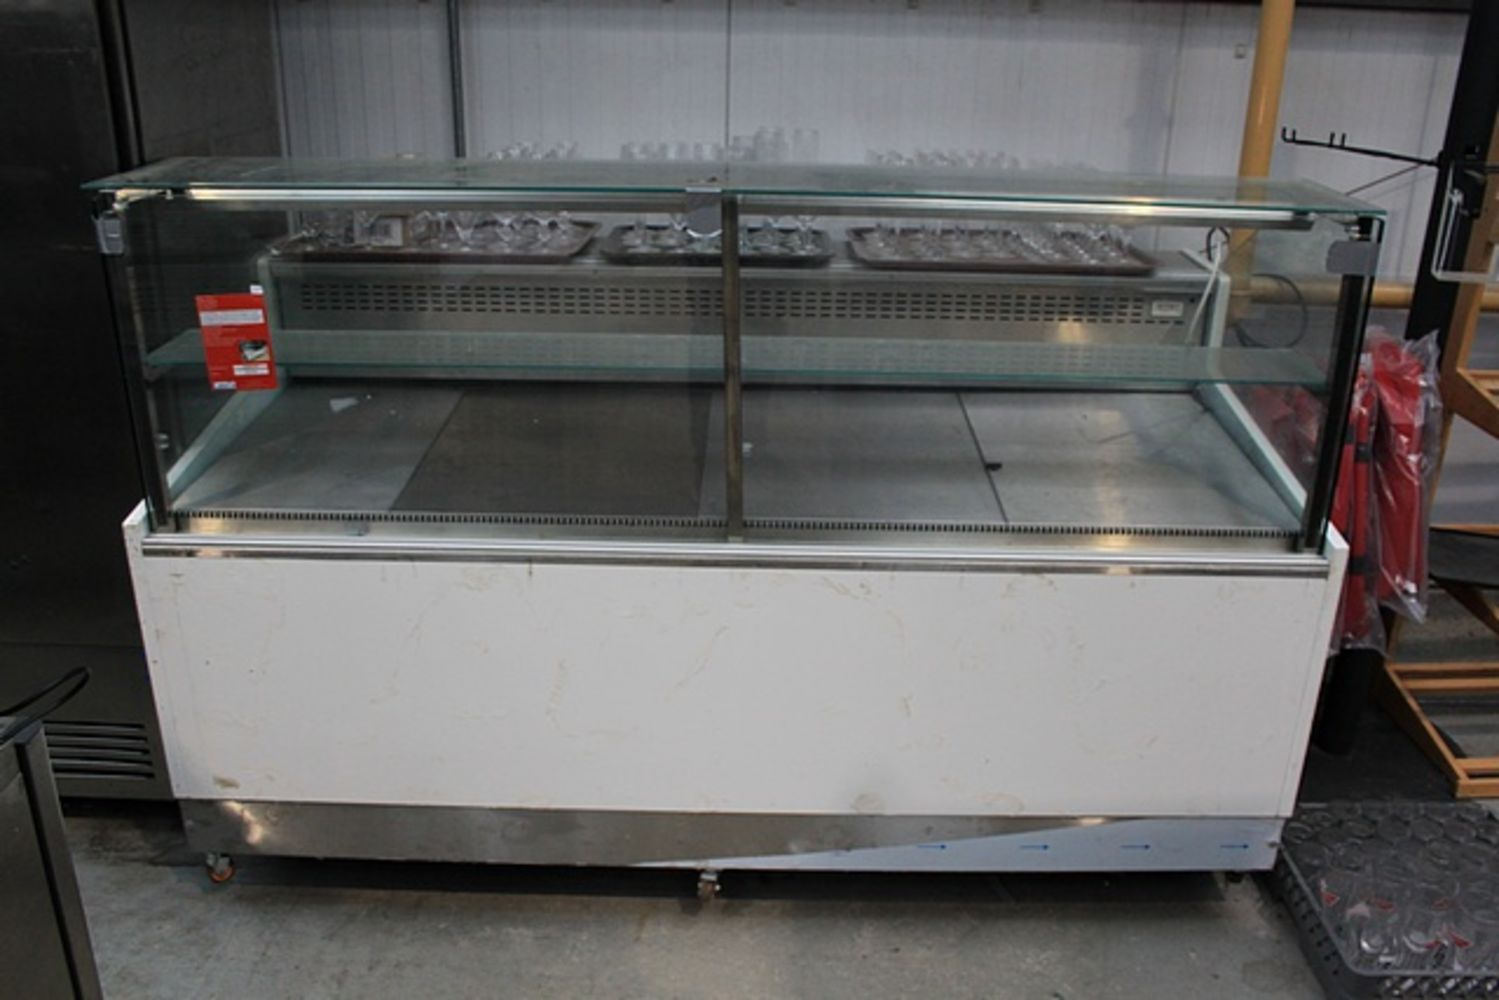 Commercial Catering Auction - Over 300 Quality Used Commercial Catering Items Offered for Auction